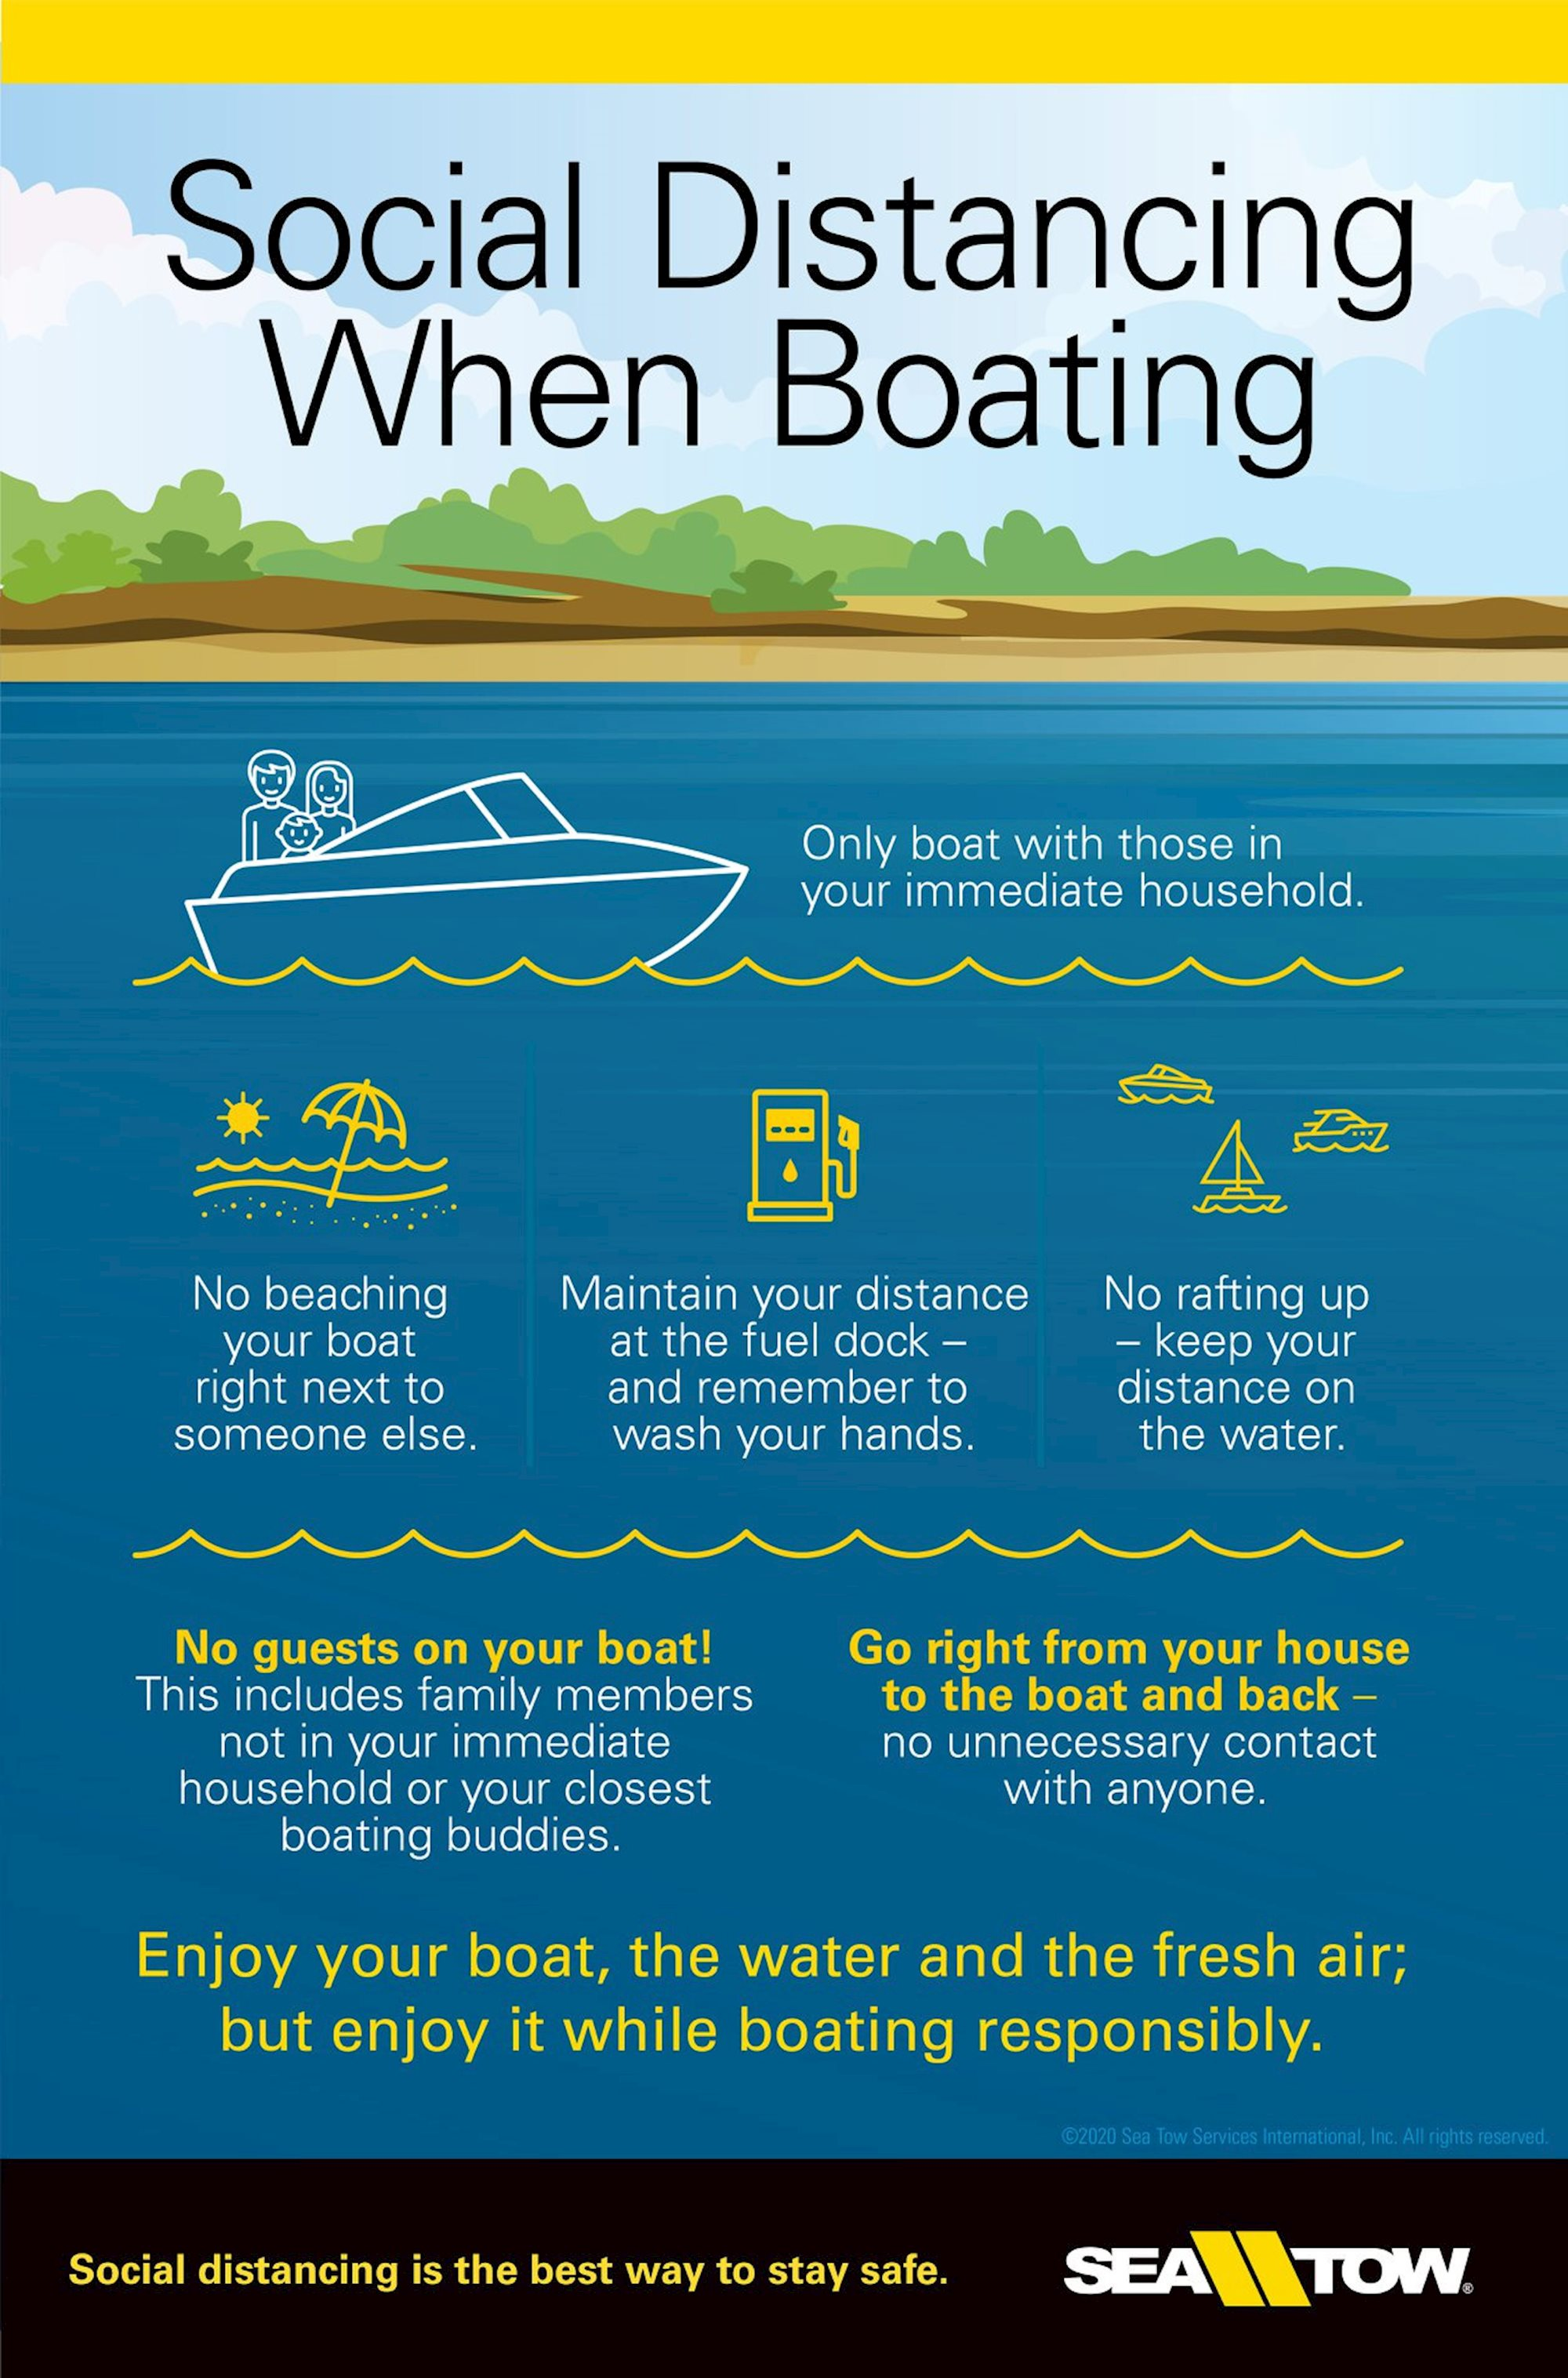 SeaTow's tips on social distancing keep you and your crew safe while boating.